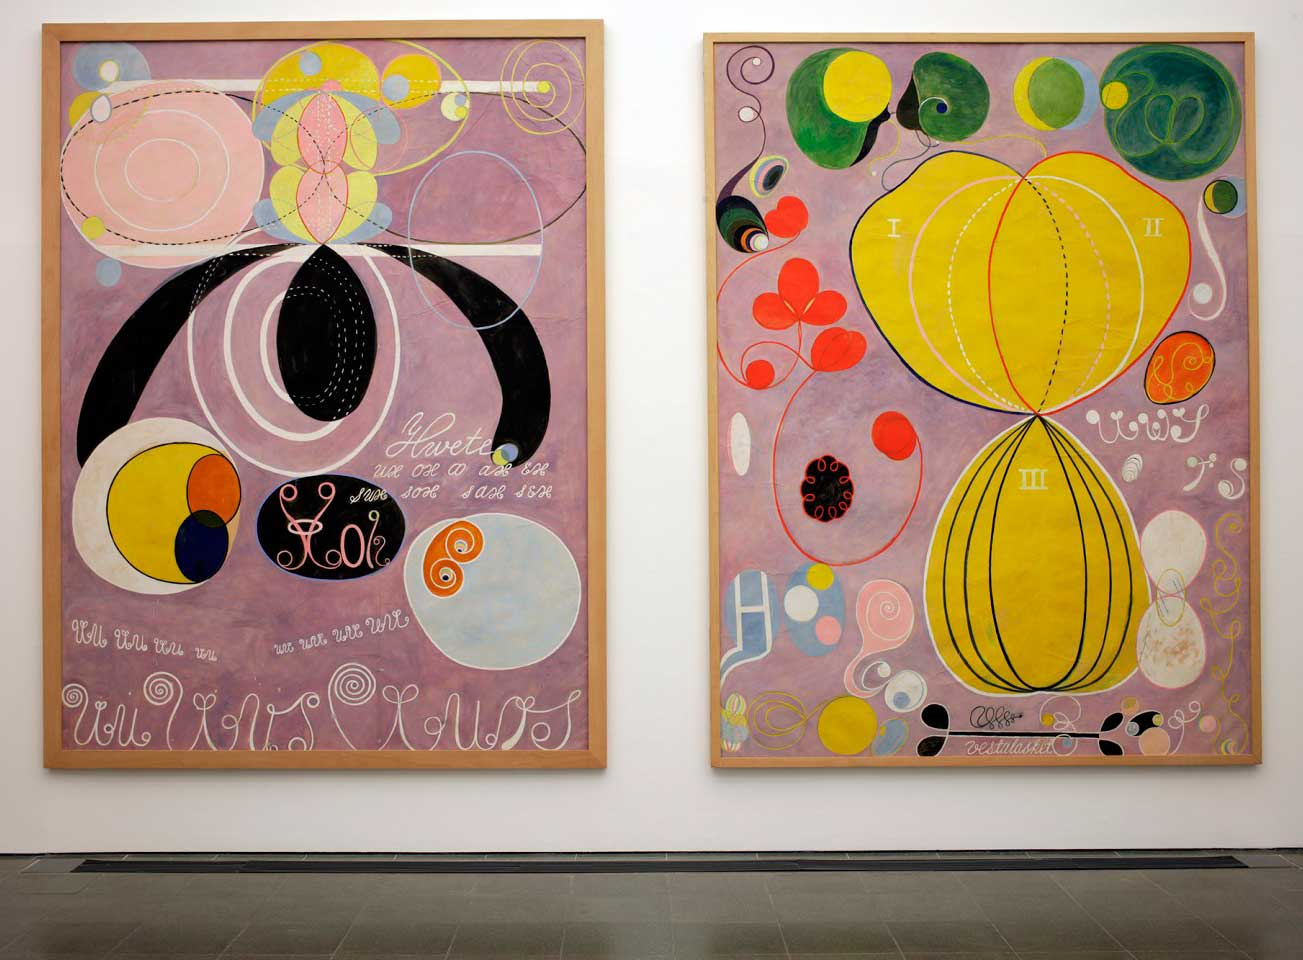 Abstract painting by artist Hilma af Klint